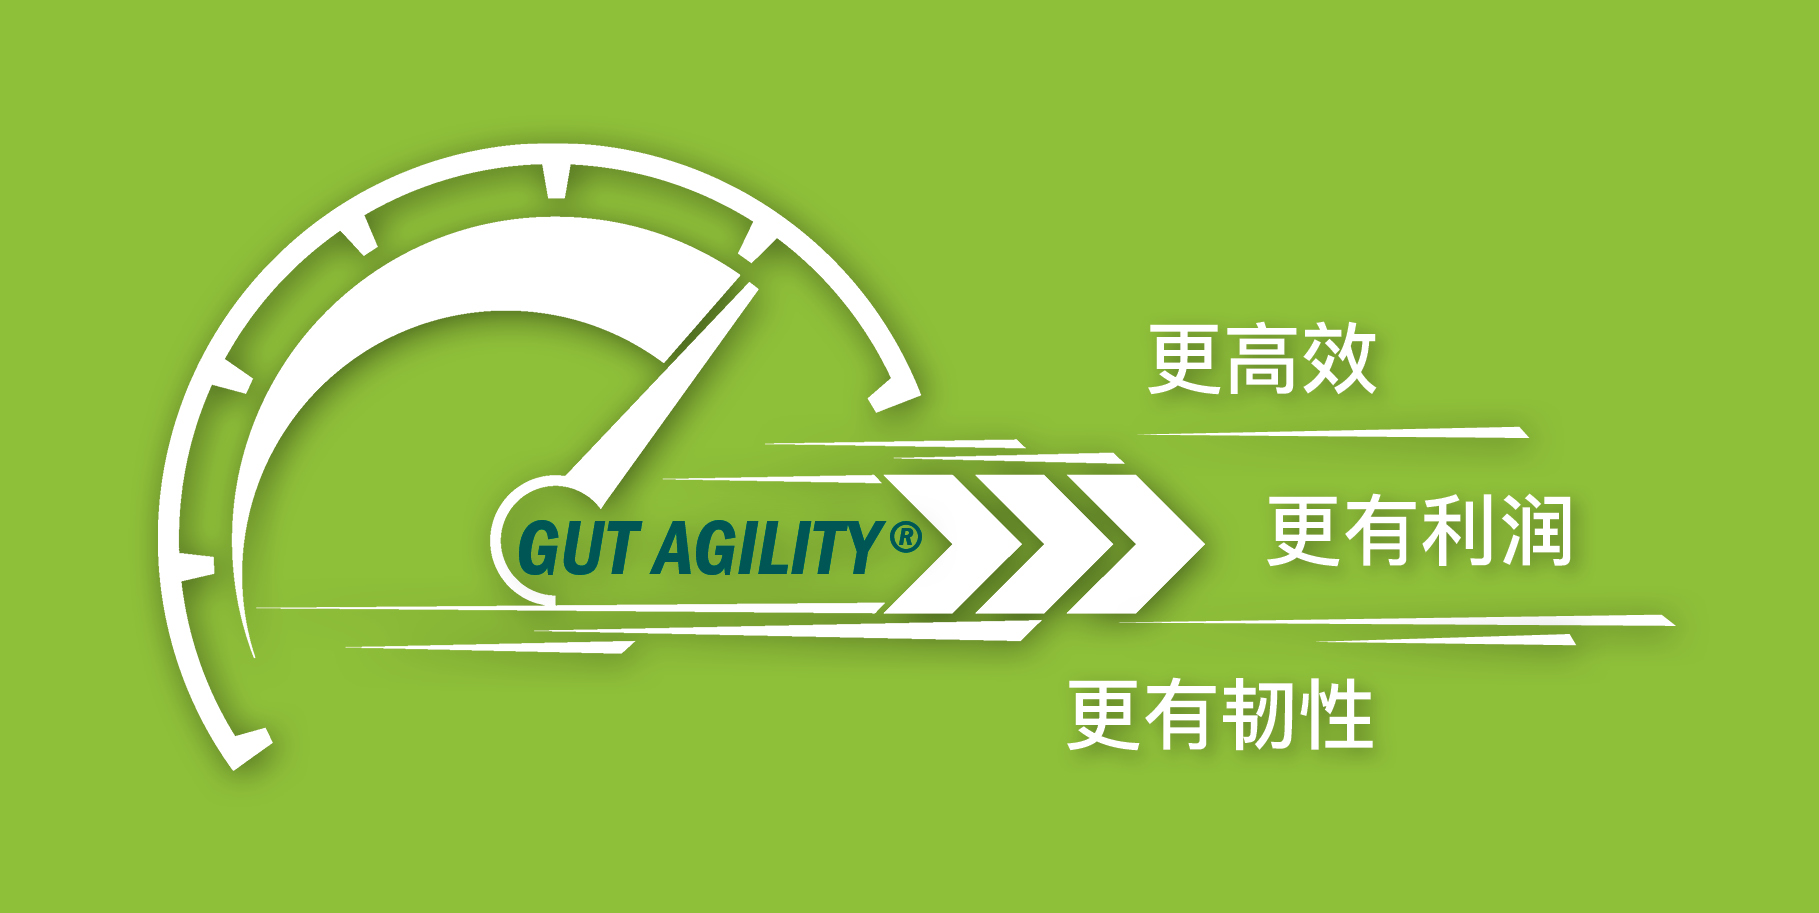 gut acility - anco fit